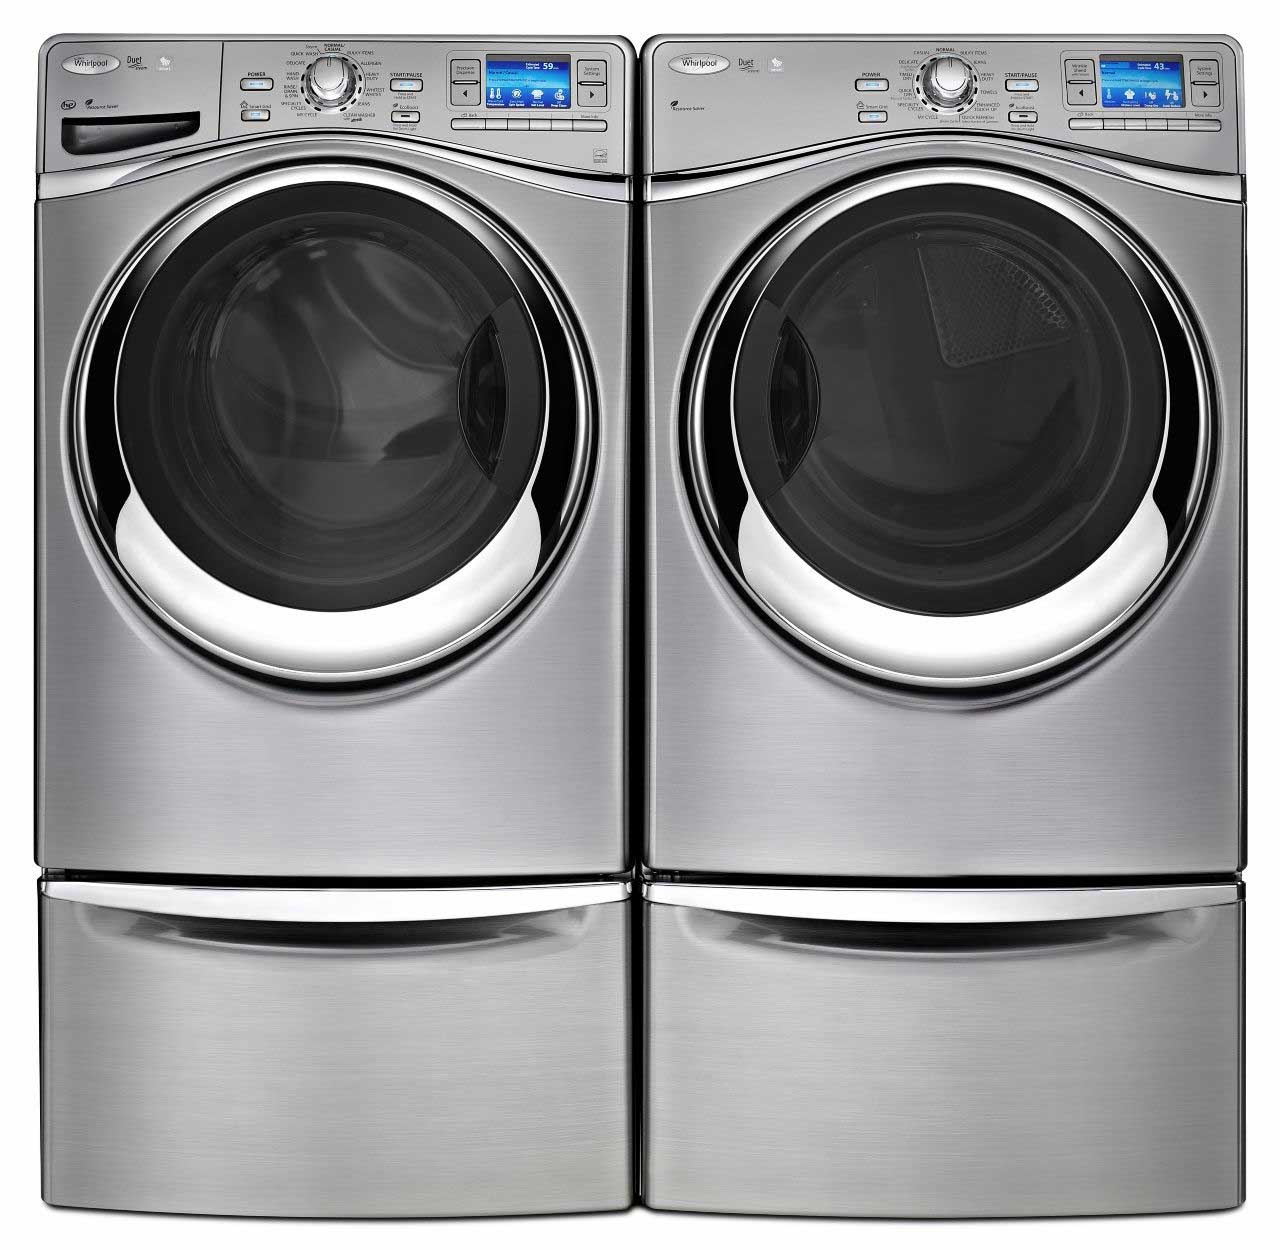 B C Washer ~ Whirlpool brand imagines smart homes with a conscience at